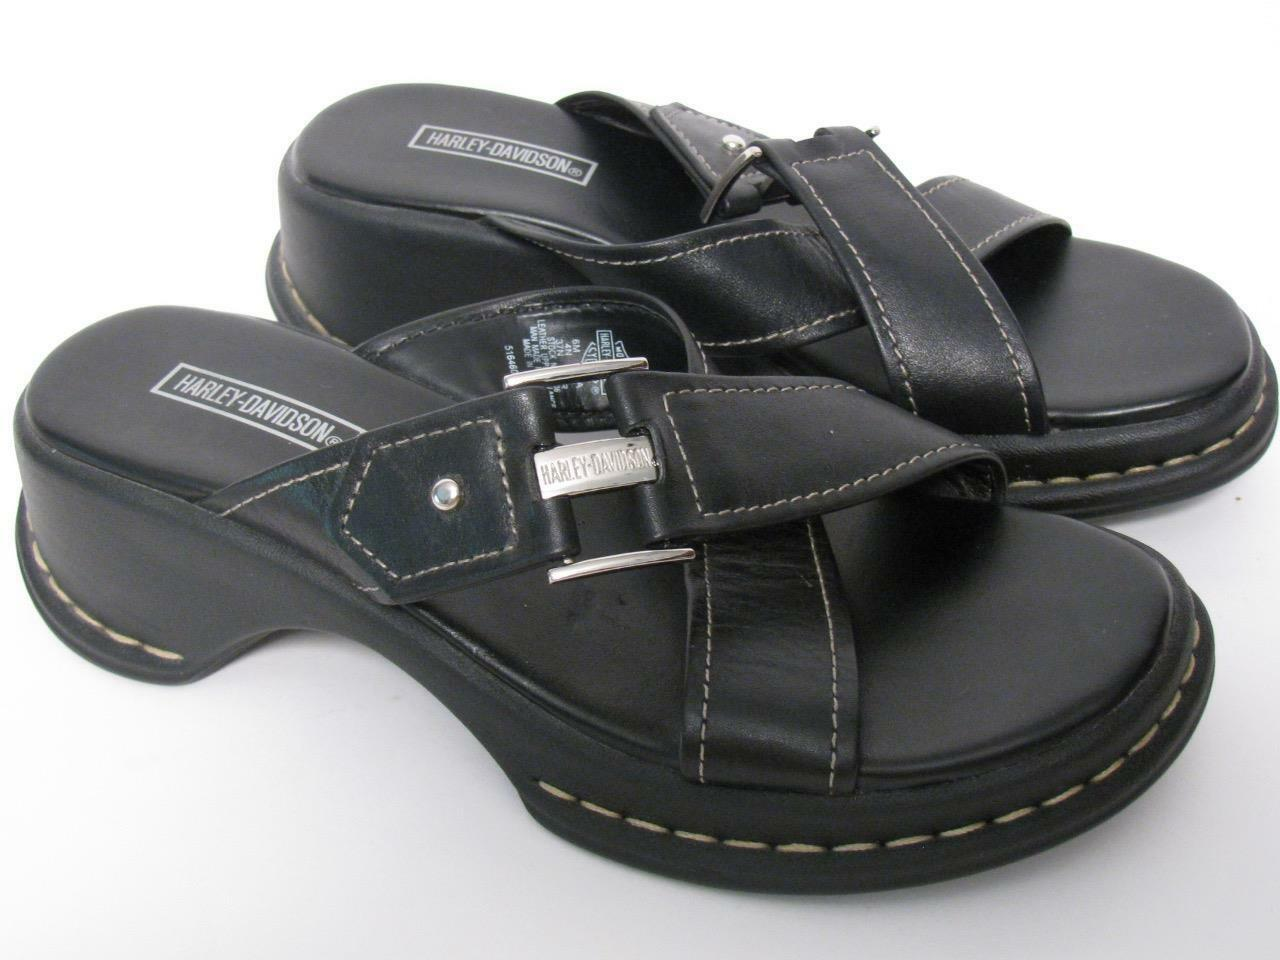 HARLEY DAVIDSON BLACK BLACK BLACK LEATHER SILVER HARDWARE SLIDES MULES SANDALS SHOES~6 e92701